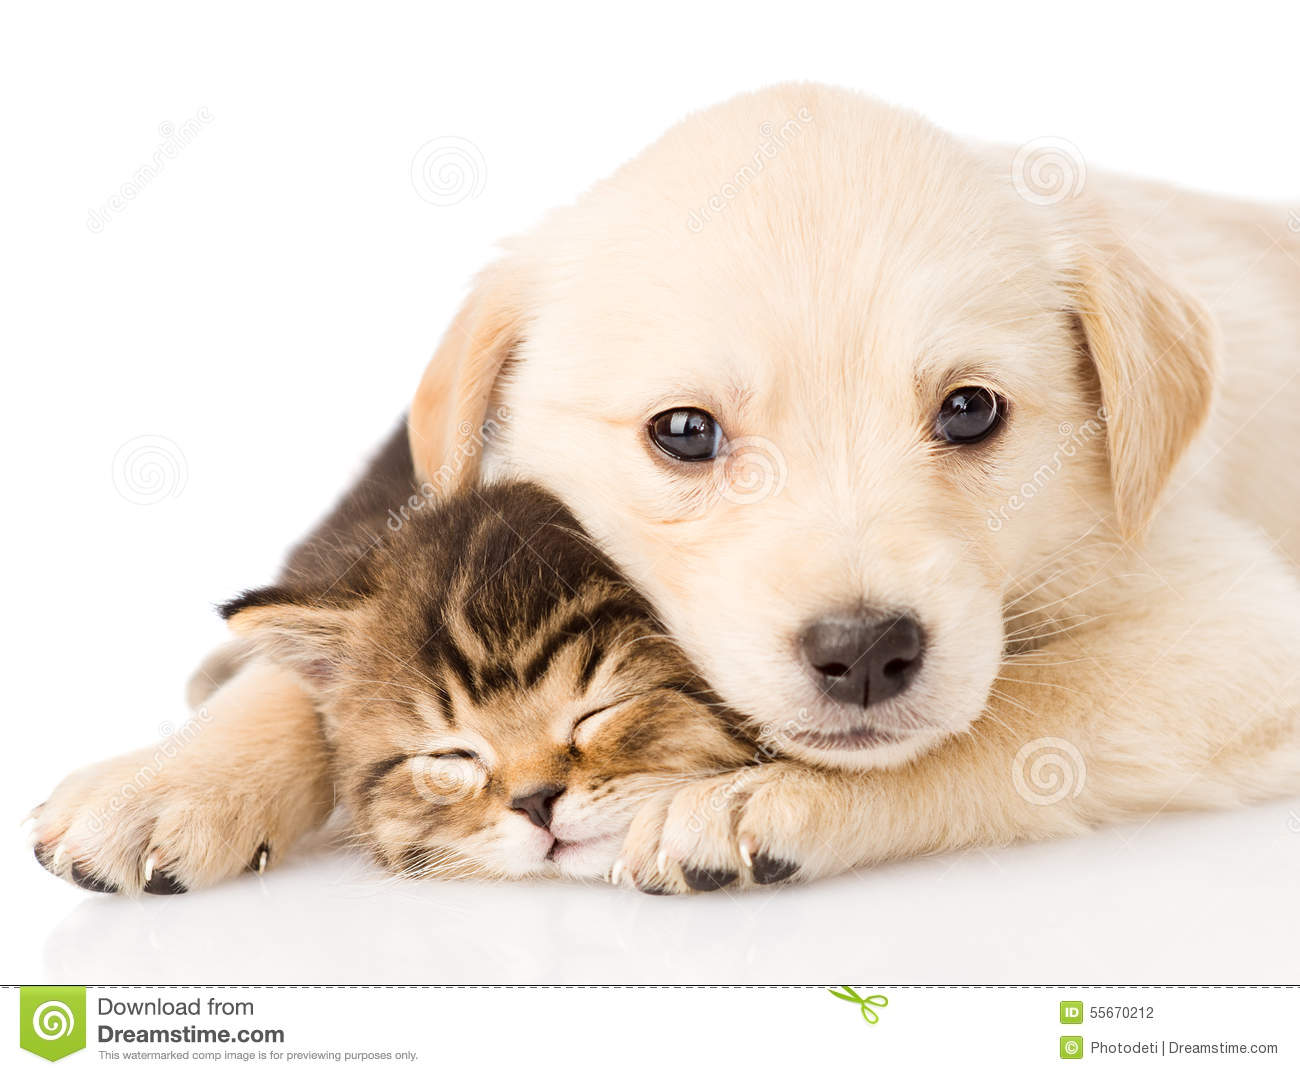 Baby puppy dog and little kitten together. isolated on white